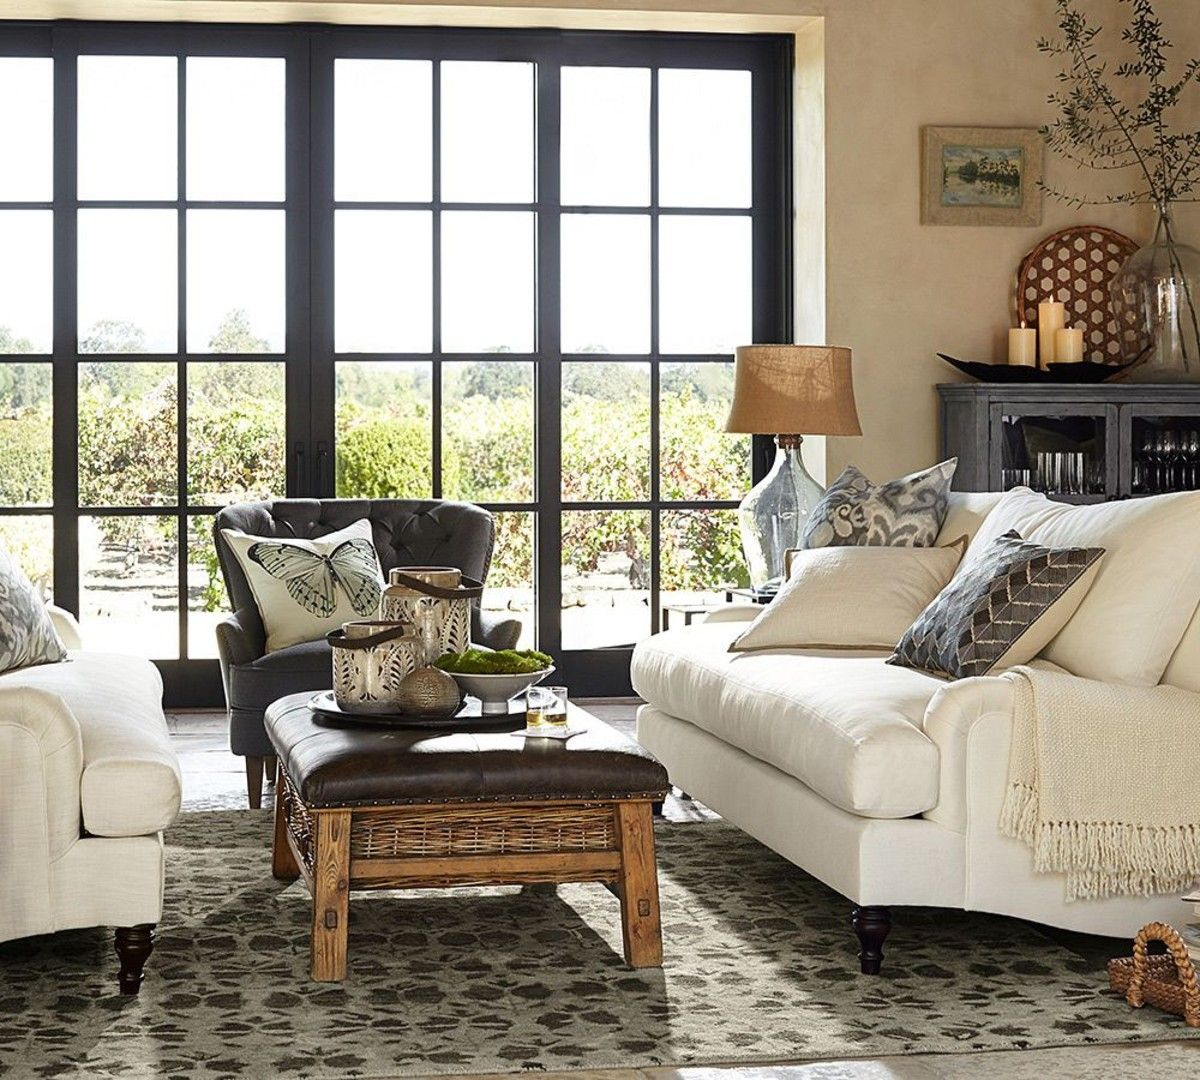 Sofas Sectionals Comfortable Pottery Barn Sofa Carlisle Upholstered Flax Color Down Blend Wred Cushions Traditional